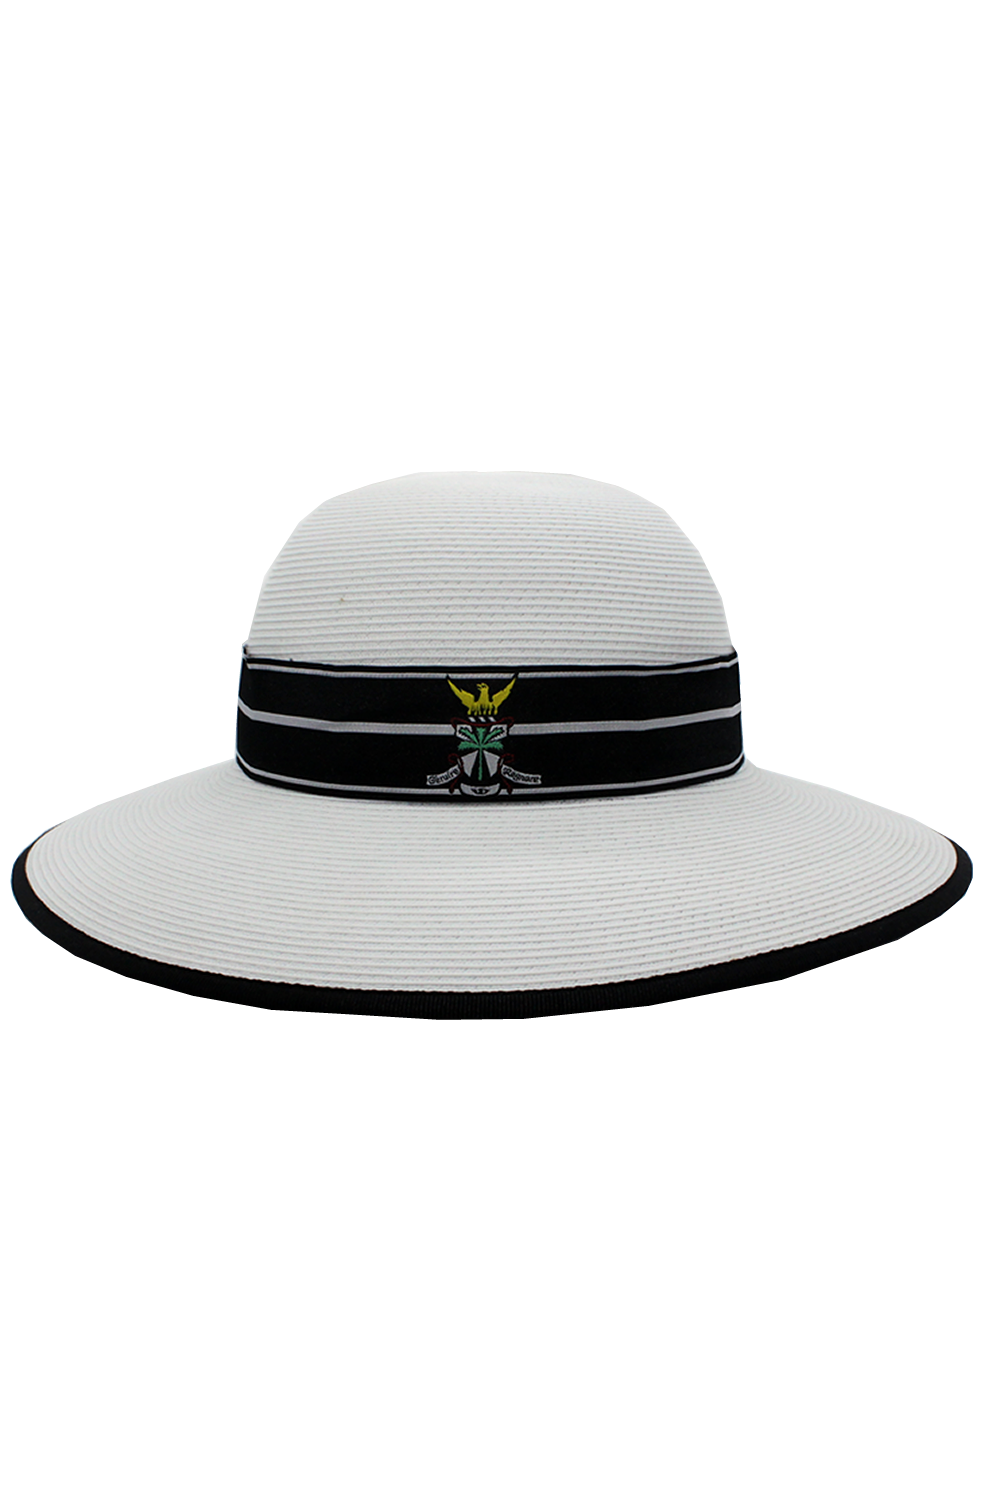 ASSG Girls Formal Hat